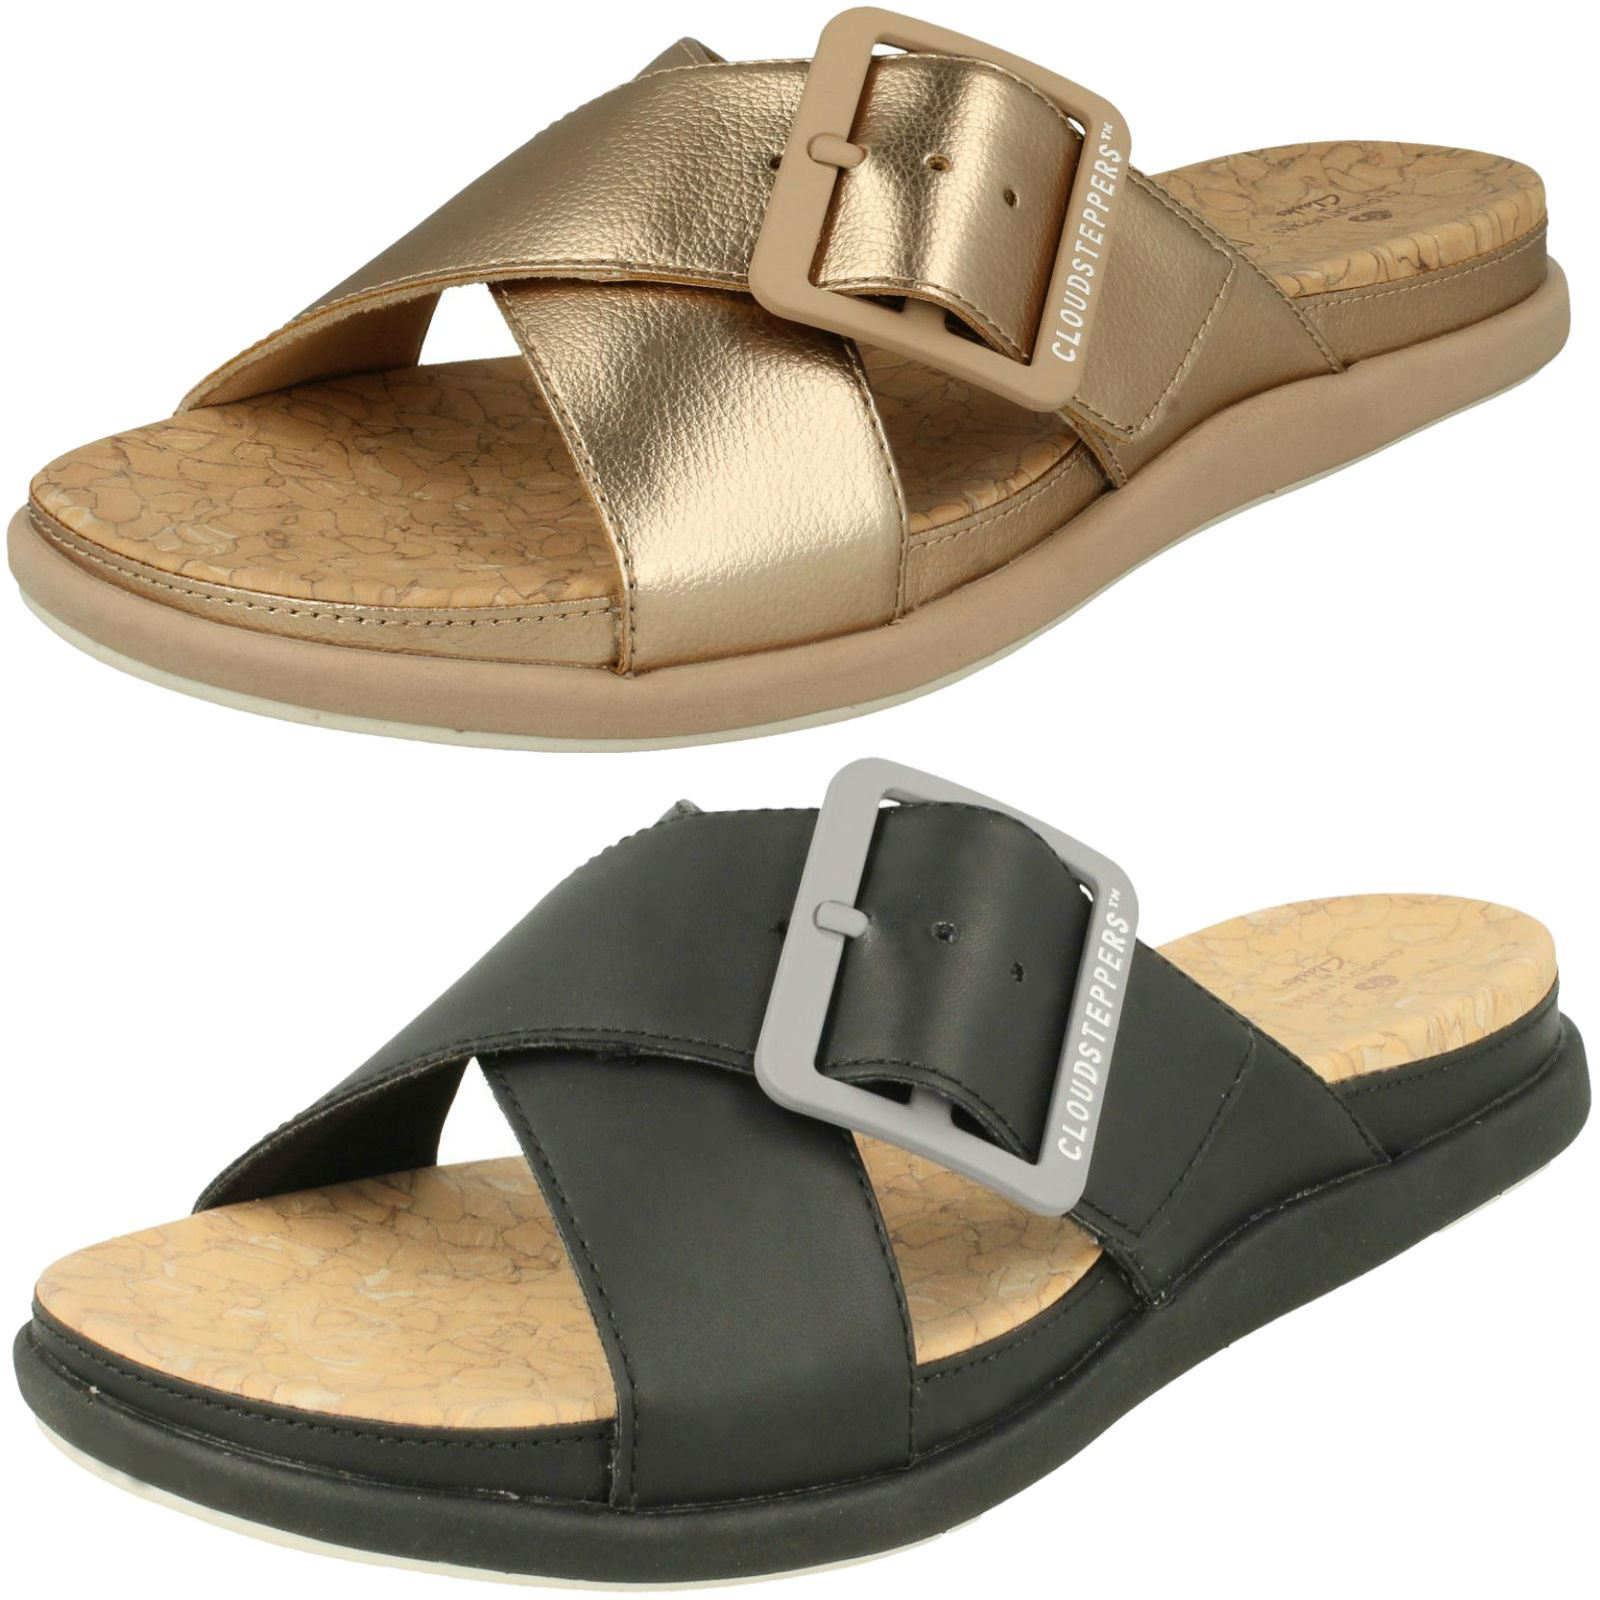 Clarks Mule Sandals Step June Shell